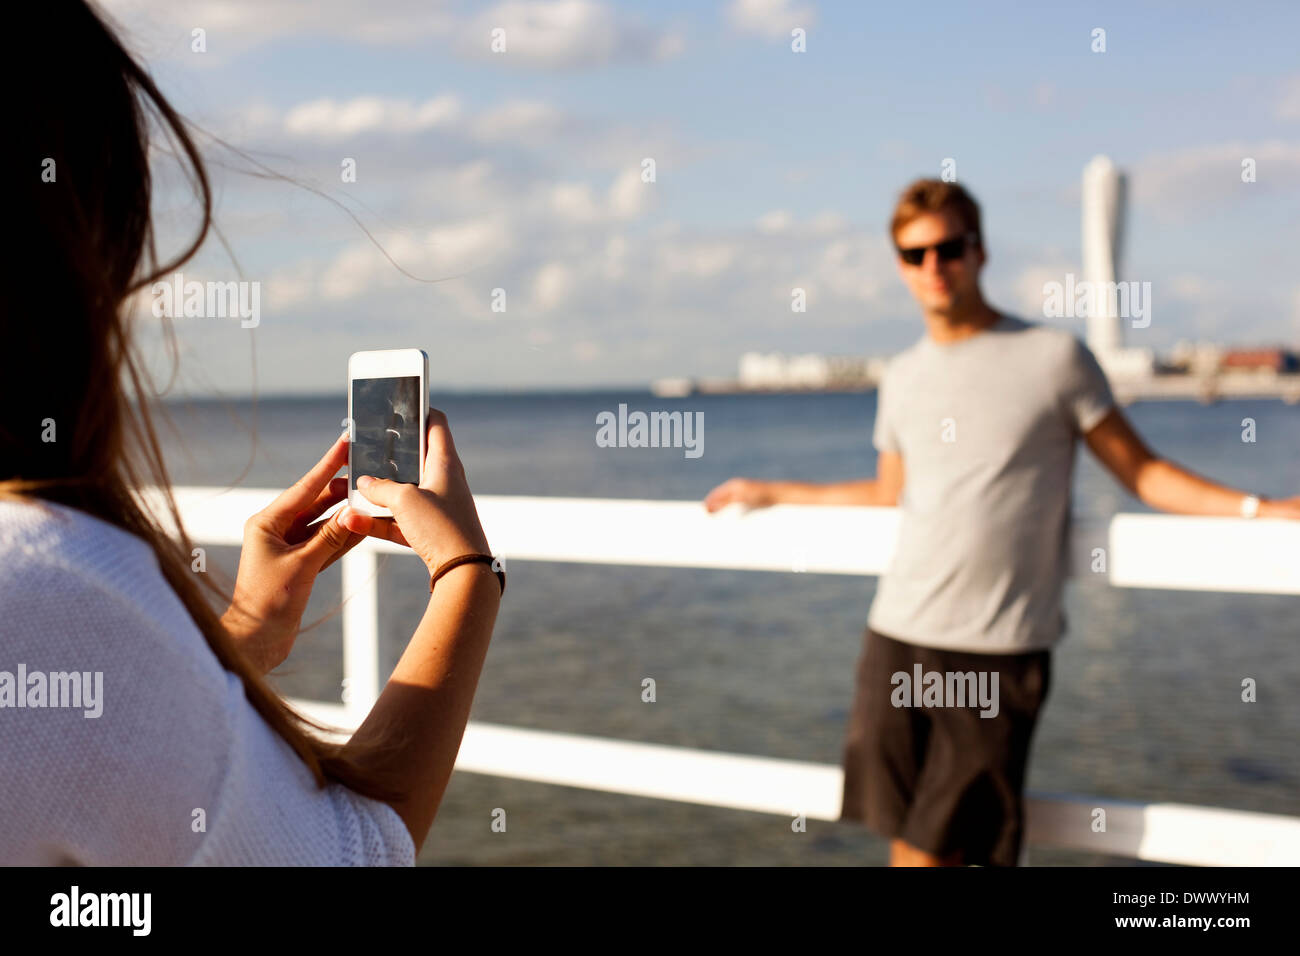 Woman photographing man through smart phone on pier - Stock Image